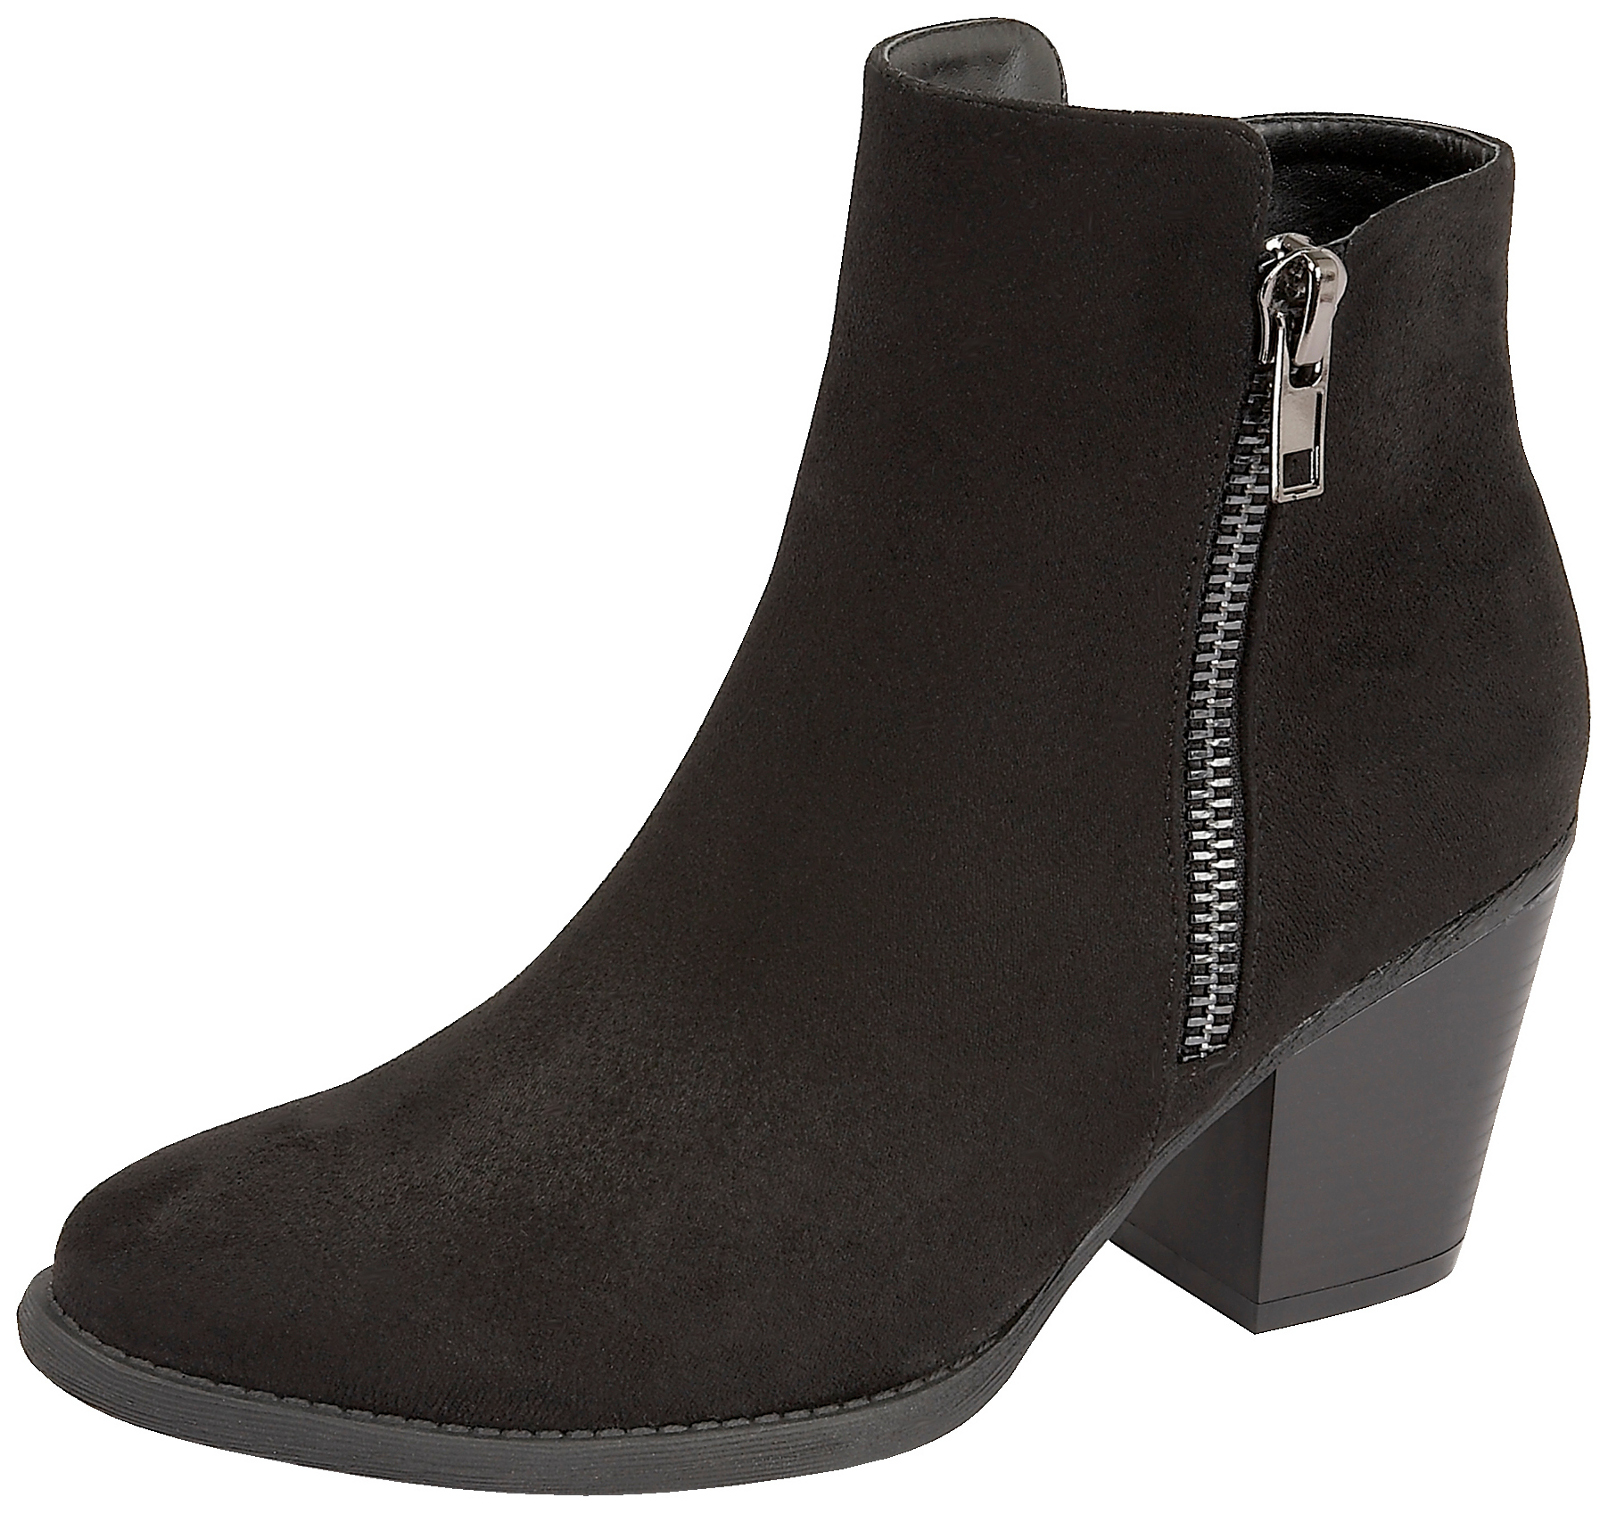 7ff1f0efc288 Womens Chunky Block Heel Chelsea Ankle Boots Faux Suede Leather ...